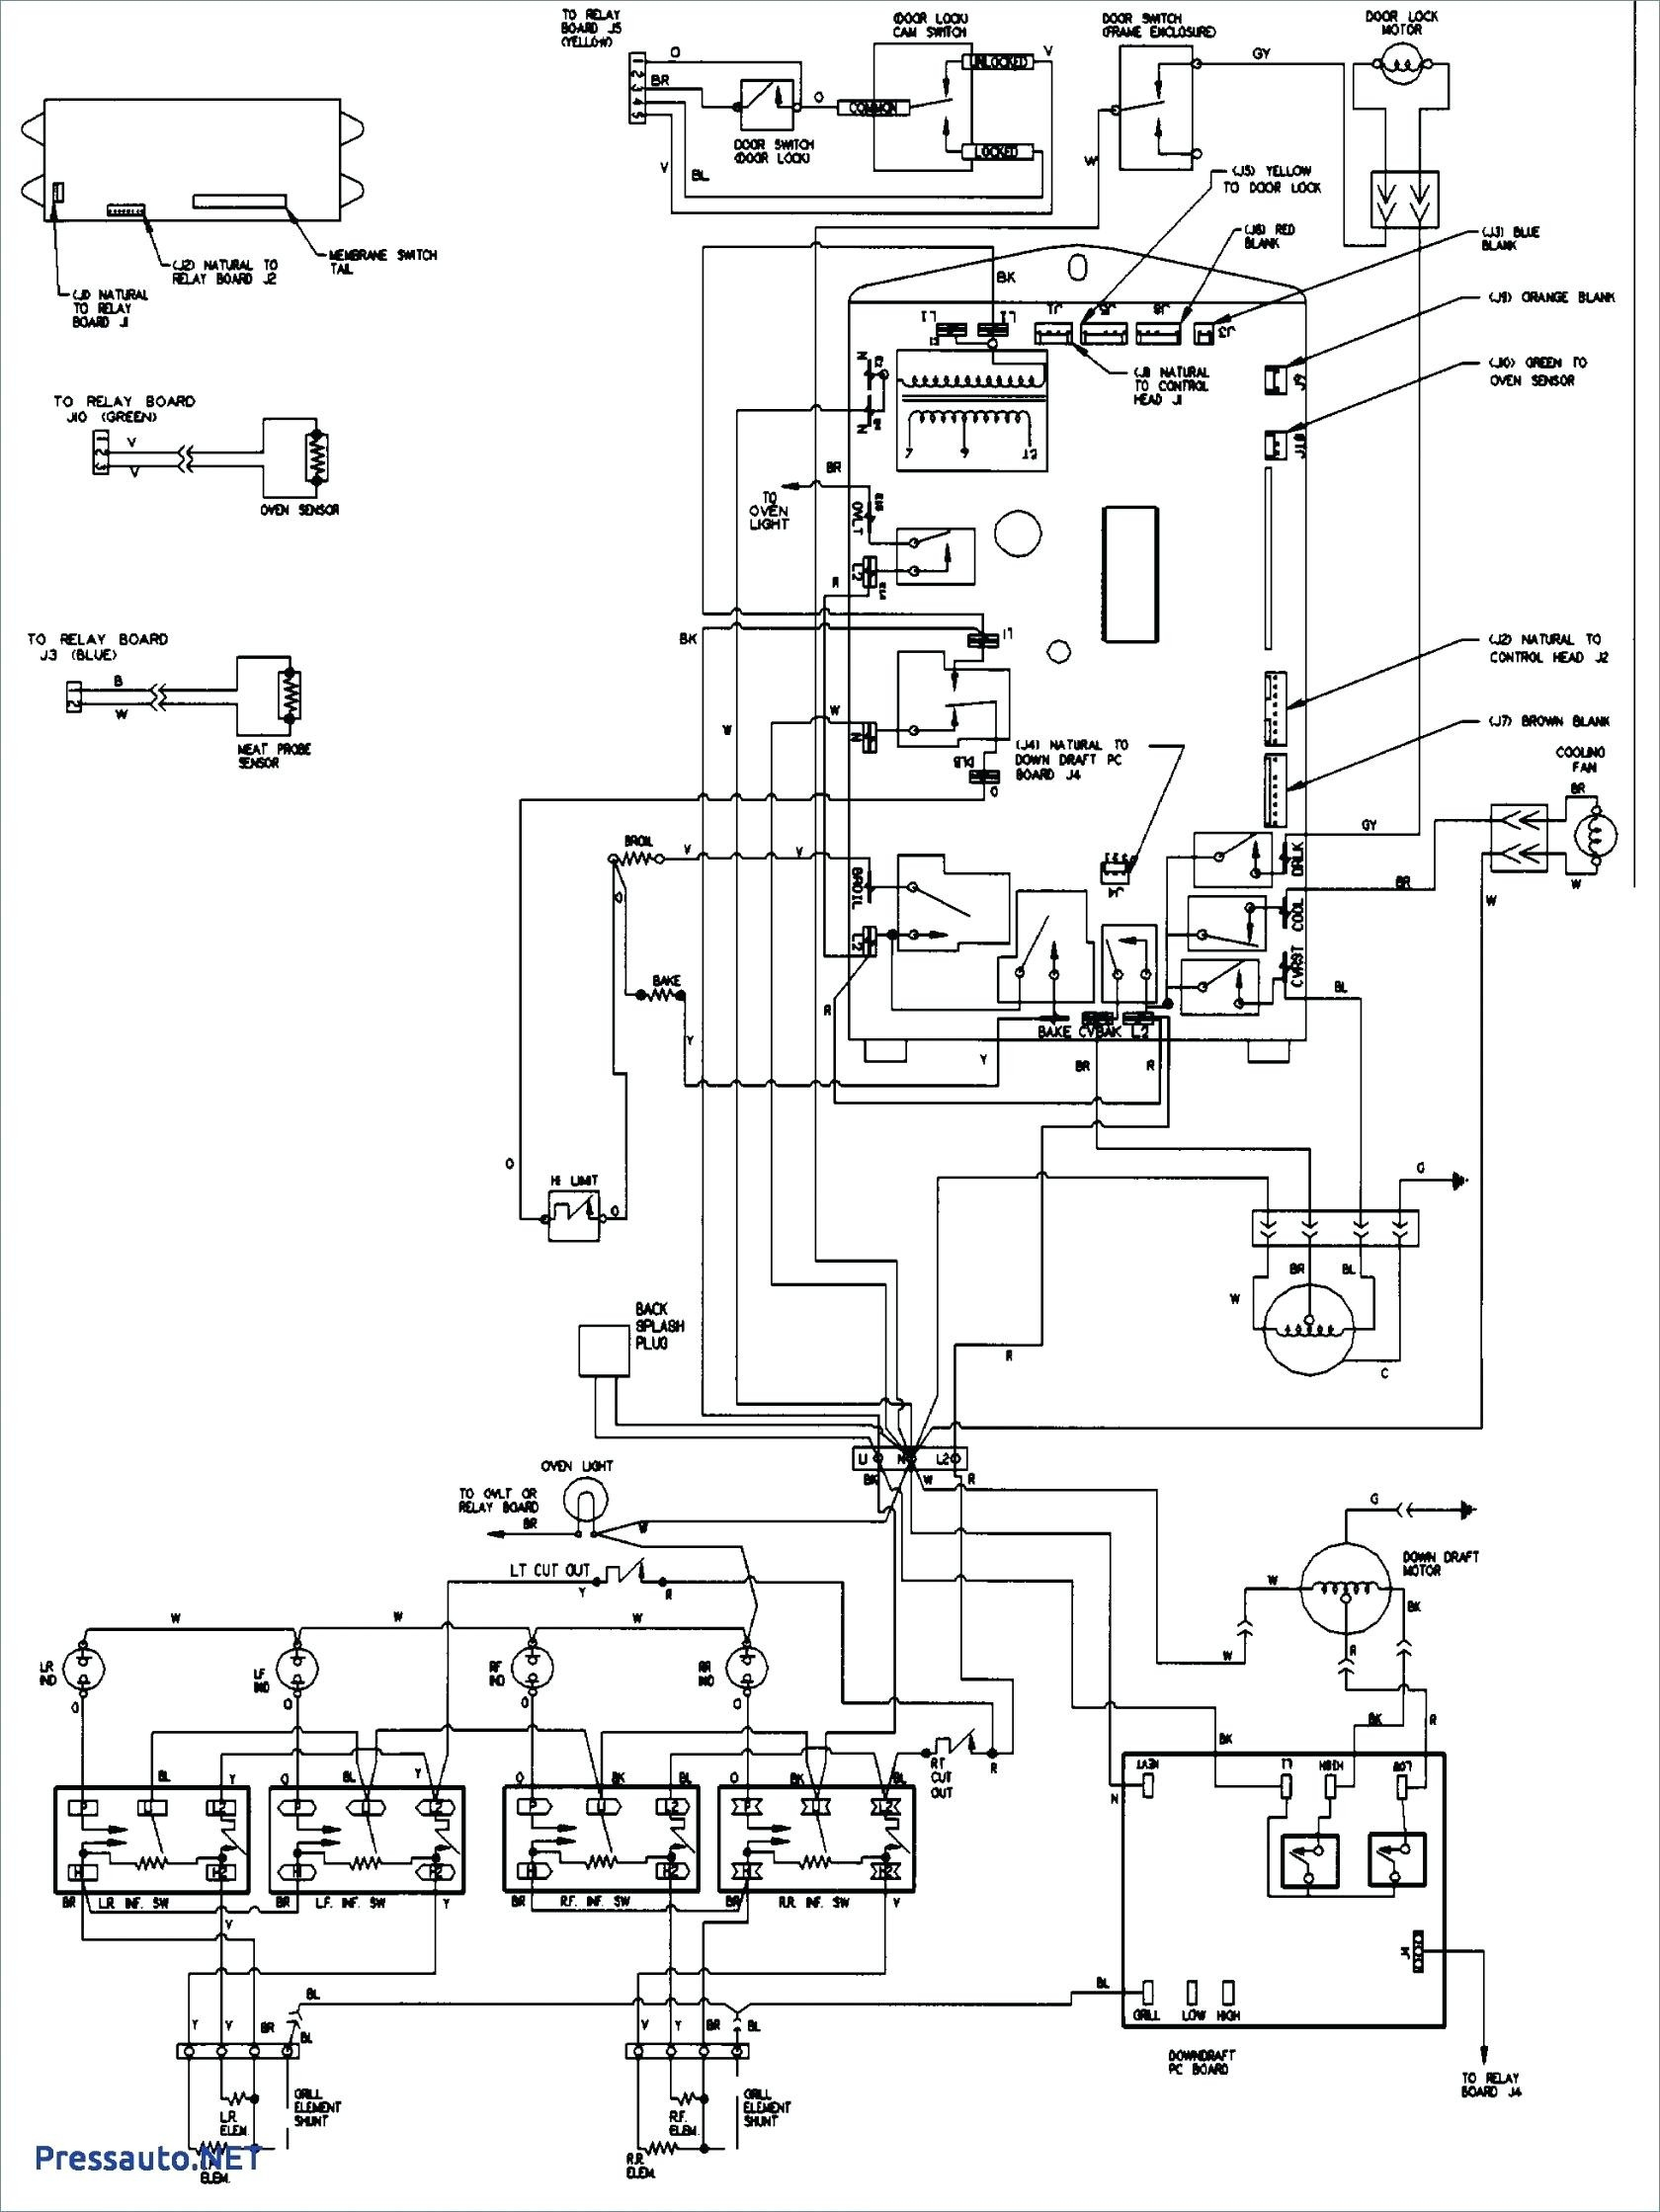 Carrier Furnace Thermostat Wiring Diagram